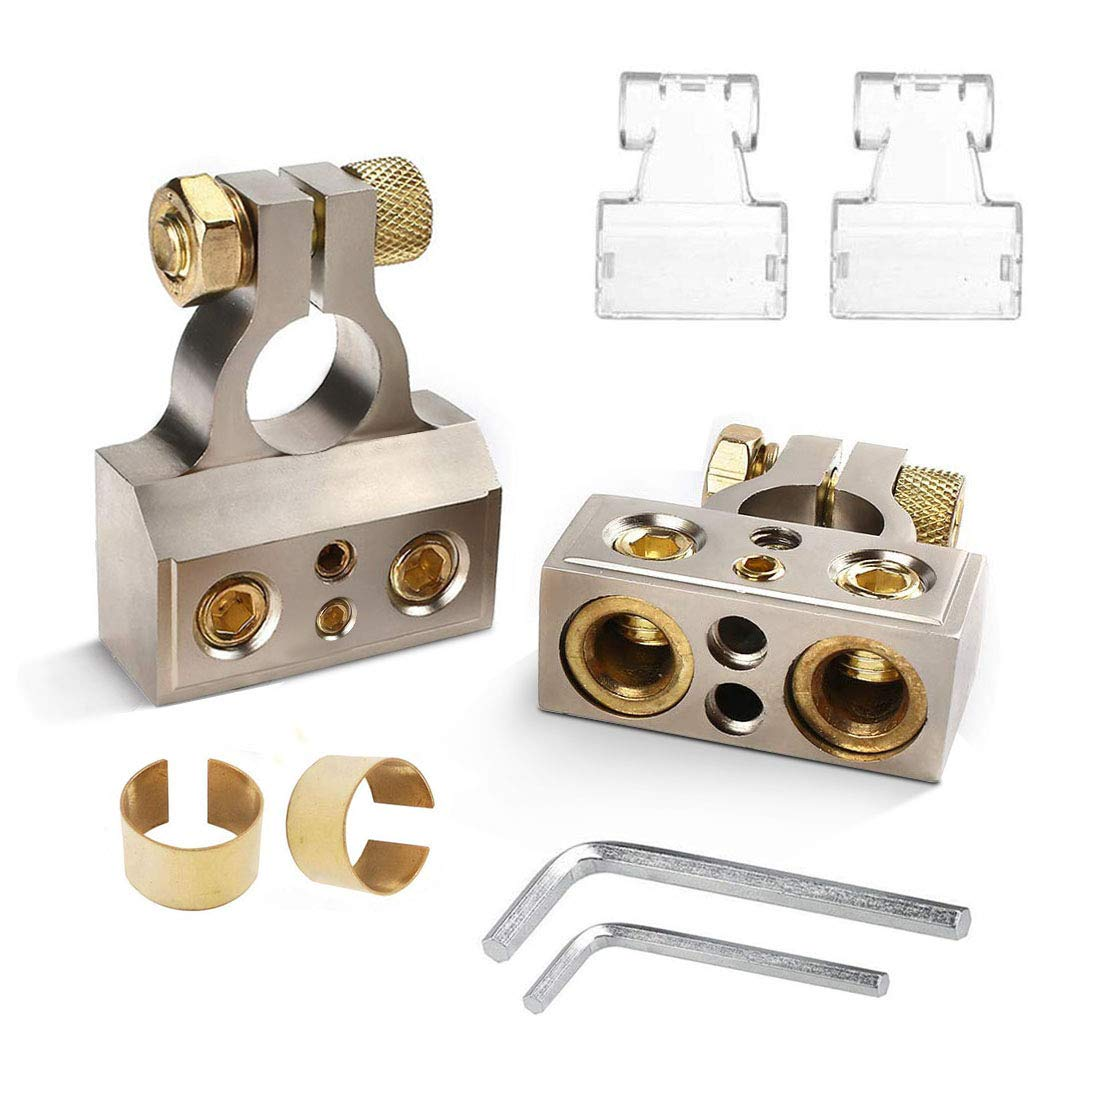 SUNMORN Battery Terminal Connector, 0/4/8/10 Gauge Heavy Duty AMP Car Battery Terminals Connectors, Shims Positive & Negative, with Special Tools, 1 Pair